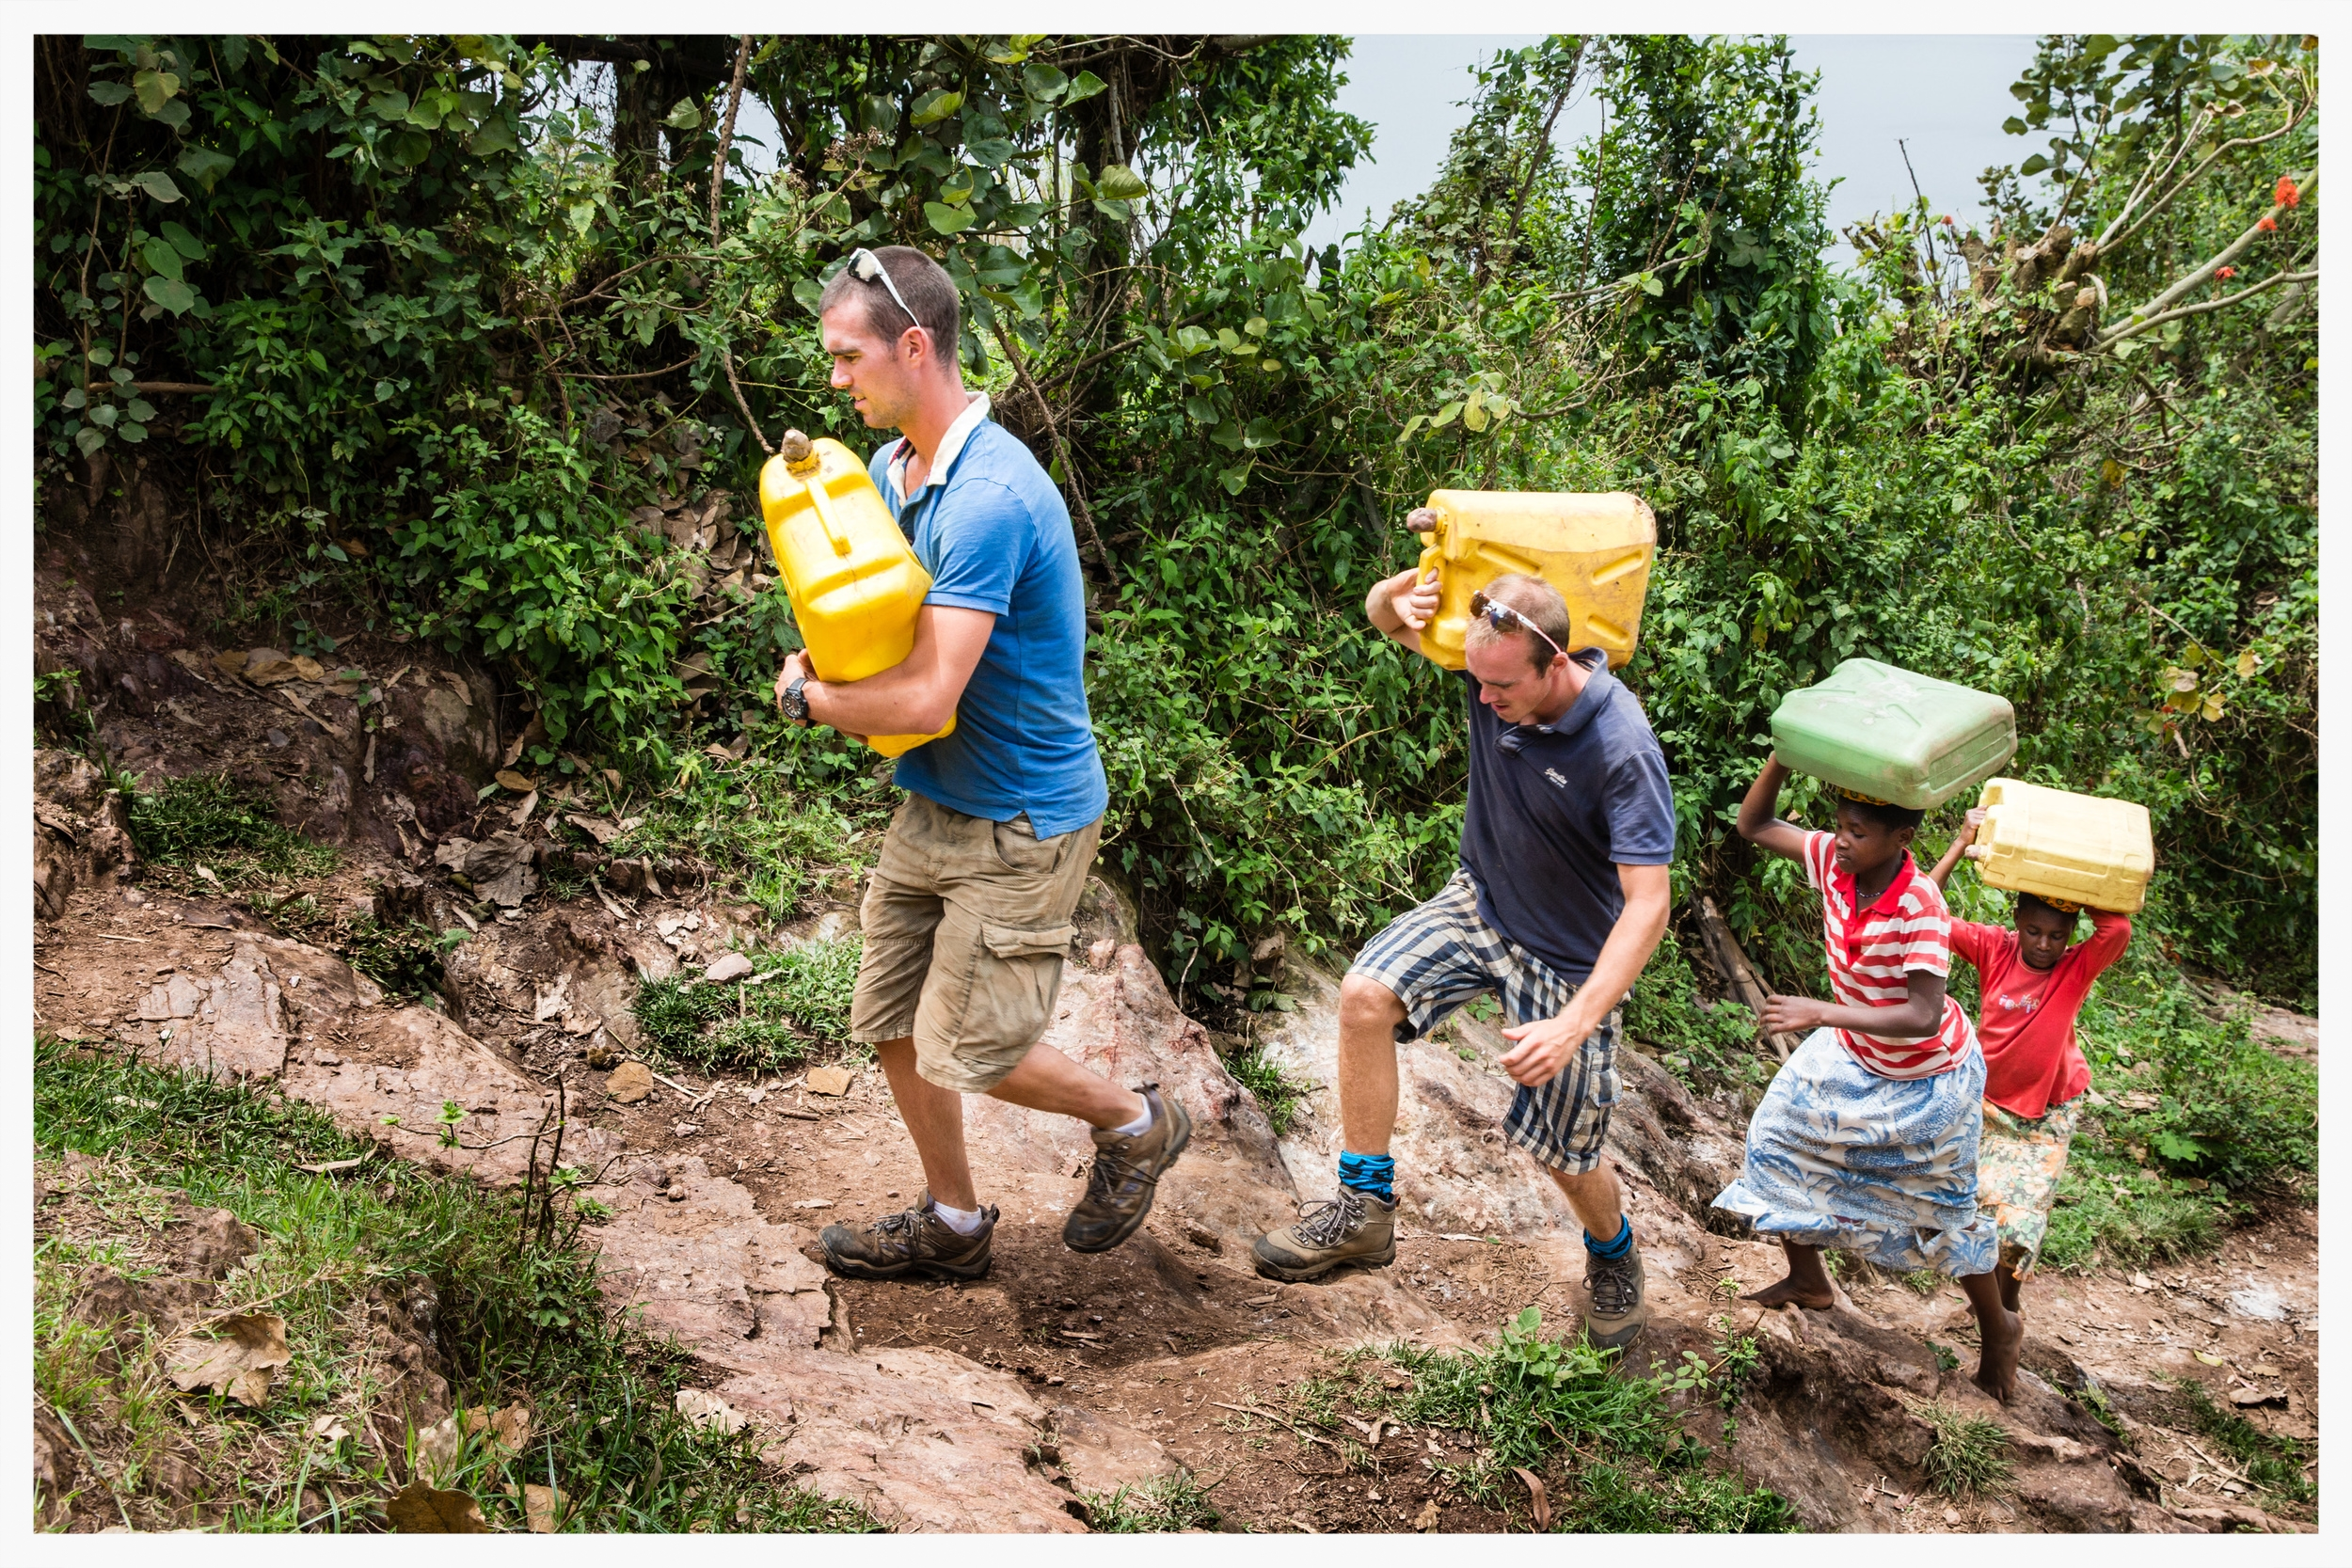 Richard and Peter Chambers join Doreen and Jouvllet on their daily trek to collect water. Despite the athletes' fitness, they admitted the walk had been far tougher than expected. Kabale district, southwest Uganda. Photo © Marcus Perkins